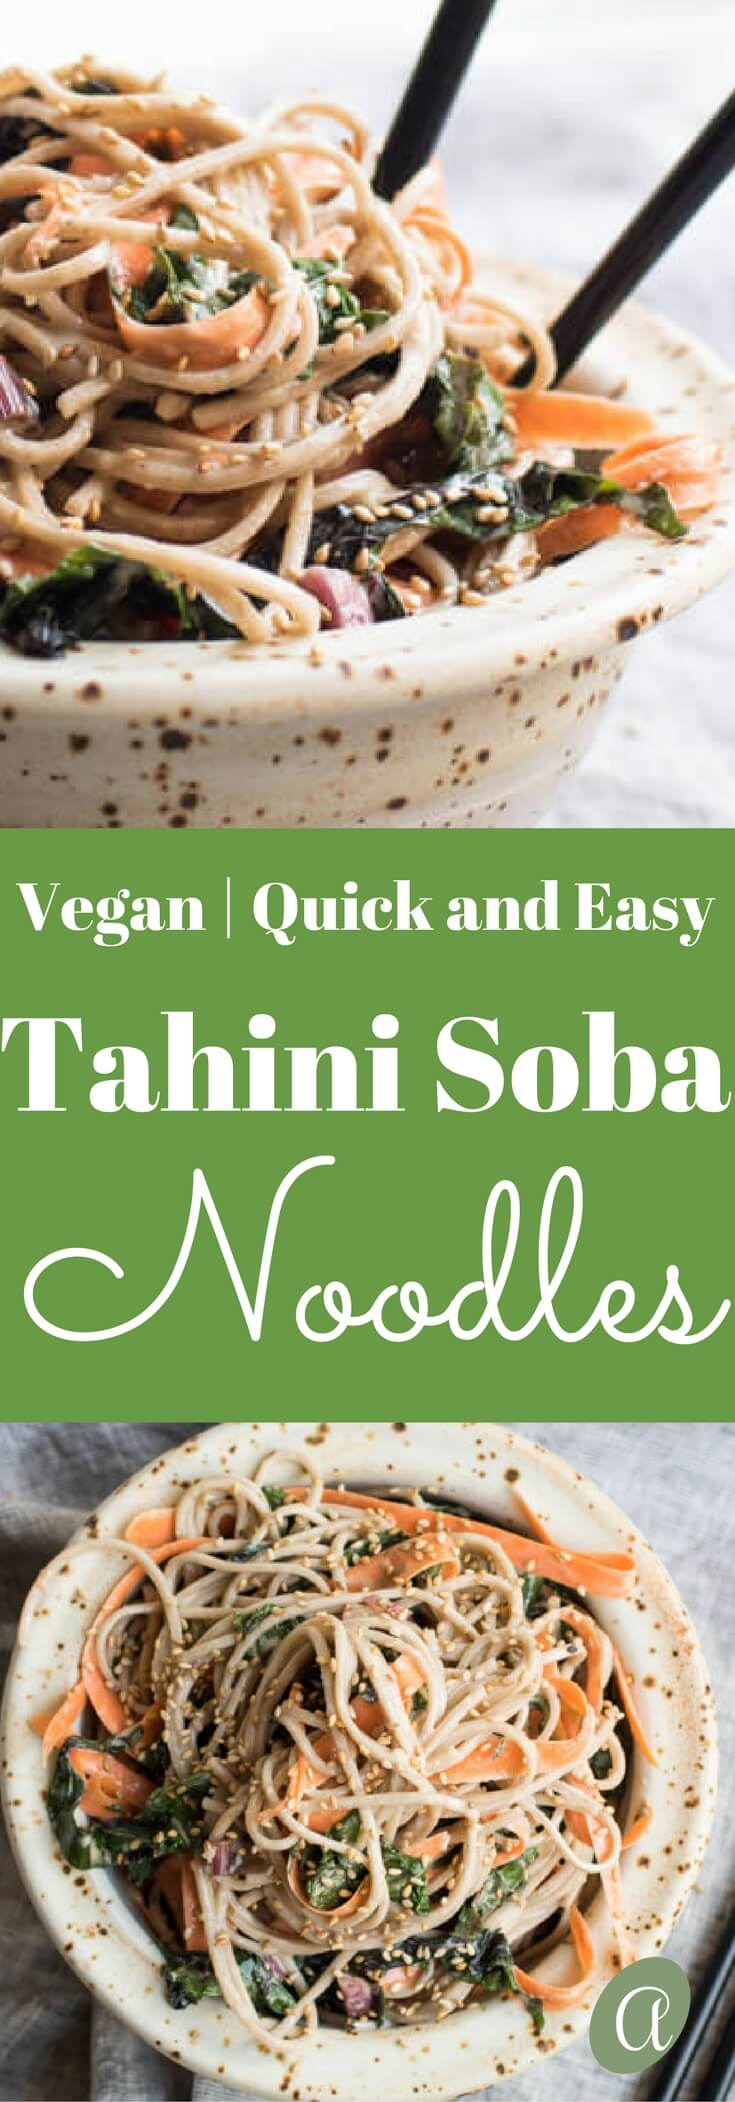 Cold Soba Noodles with Swiss Chard and Carrots in an Orange Tahini Sauce. Vegan, Quick and Easy. #sobanoodles #sesamenoodles #tahini #glutenfree